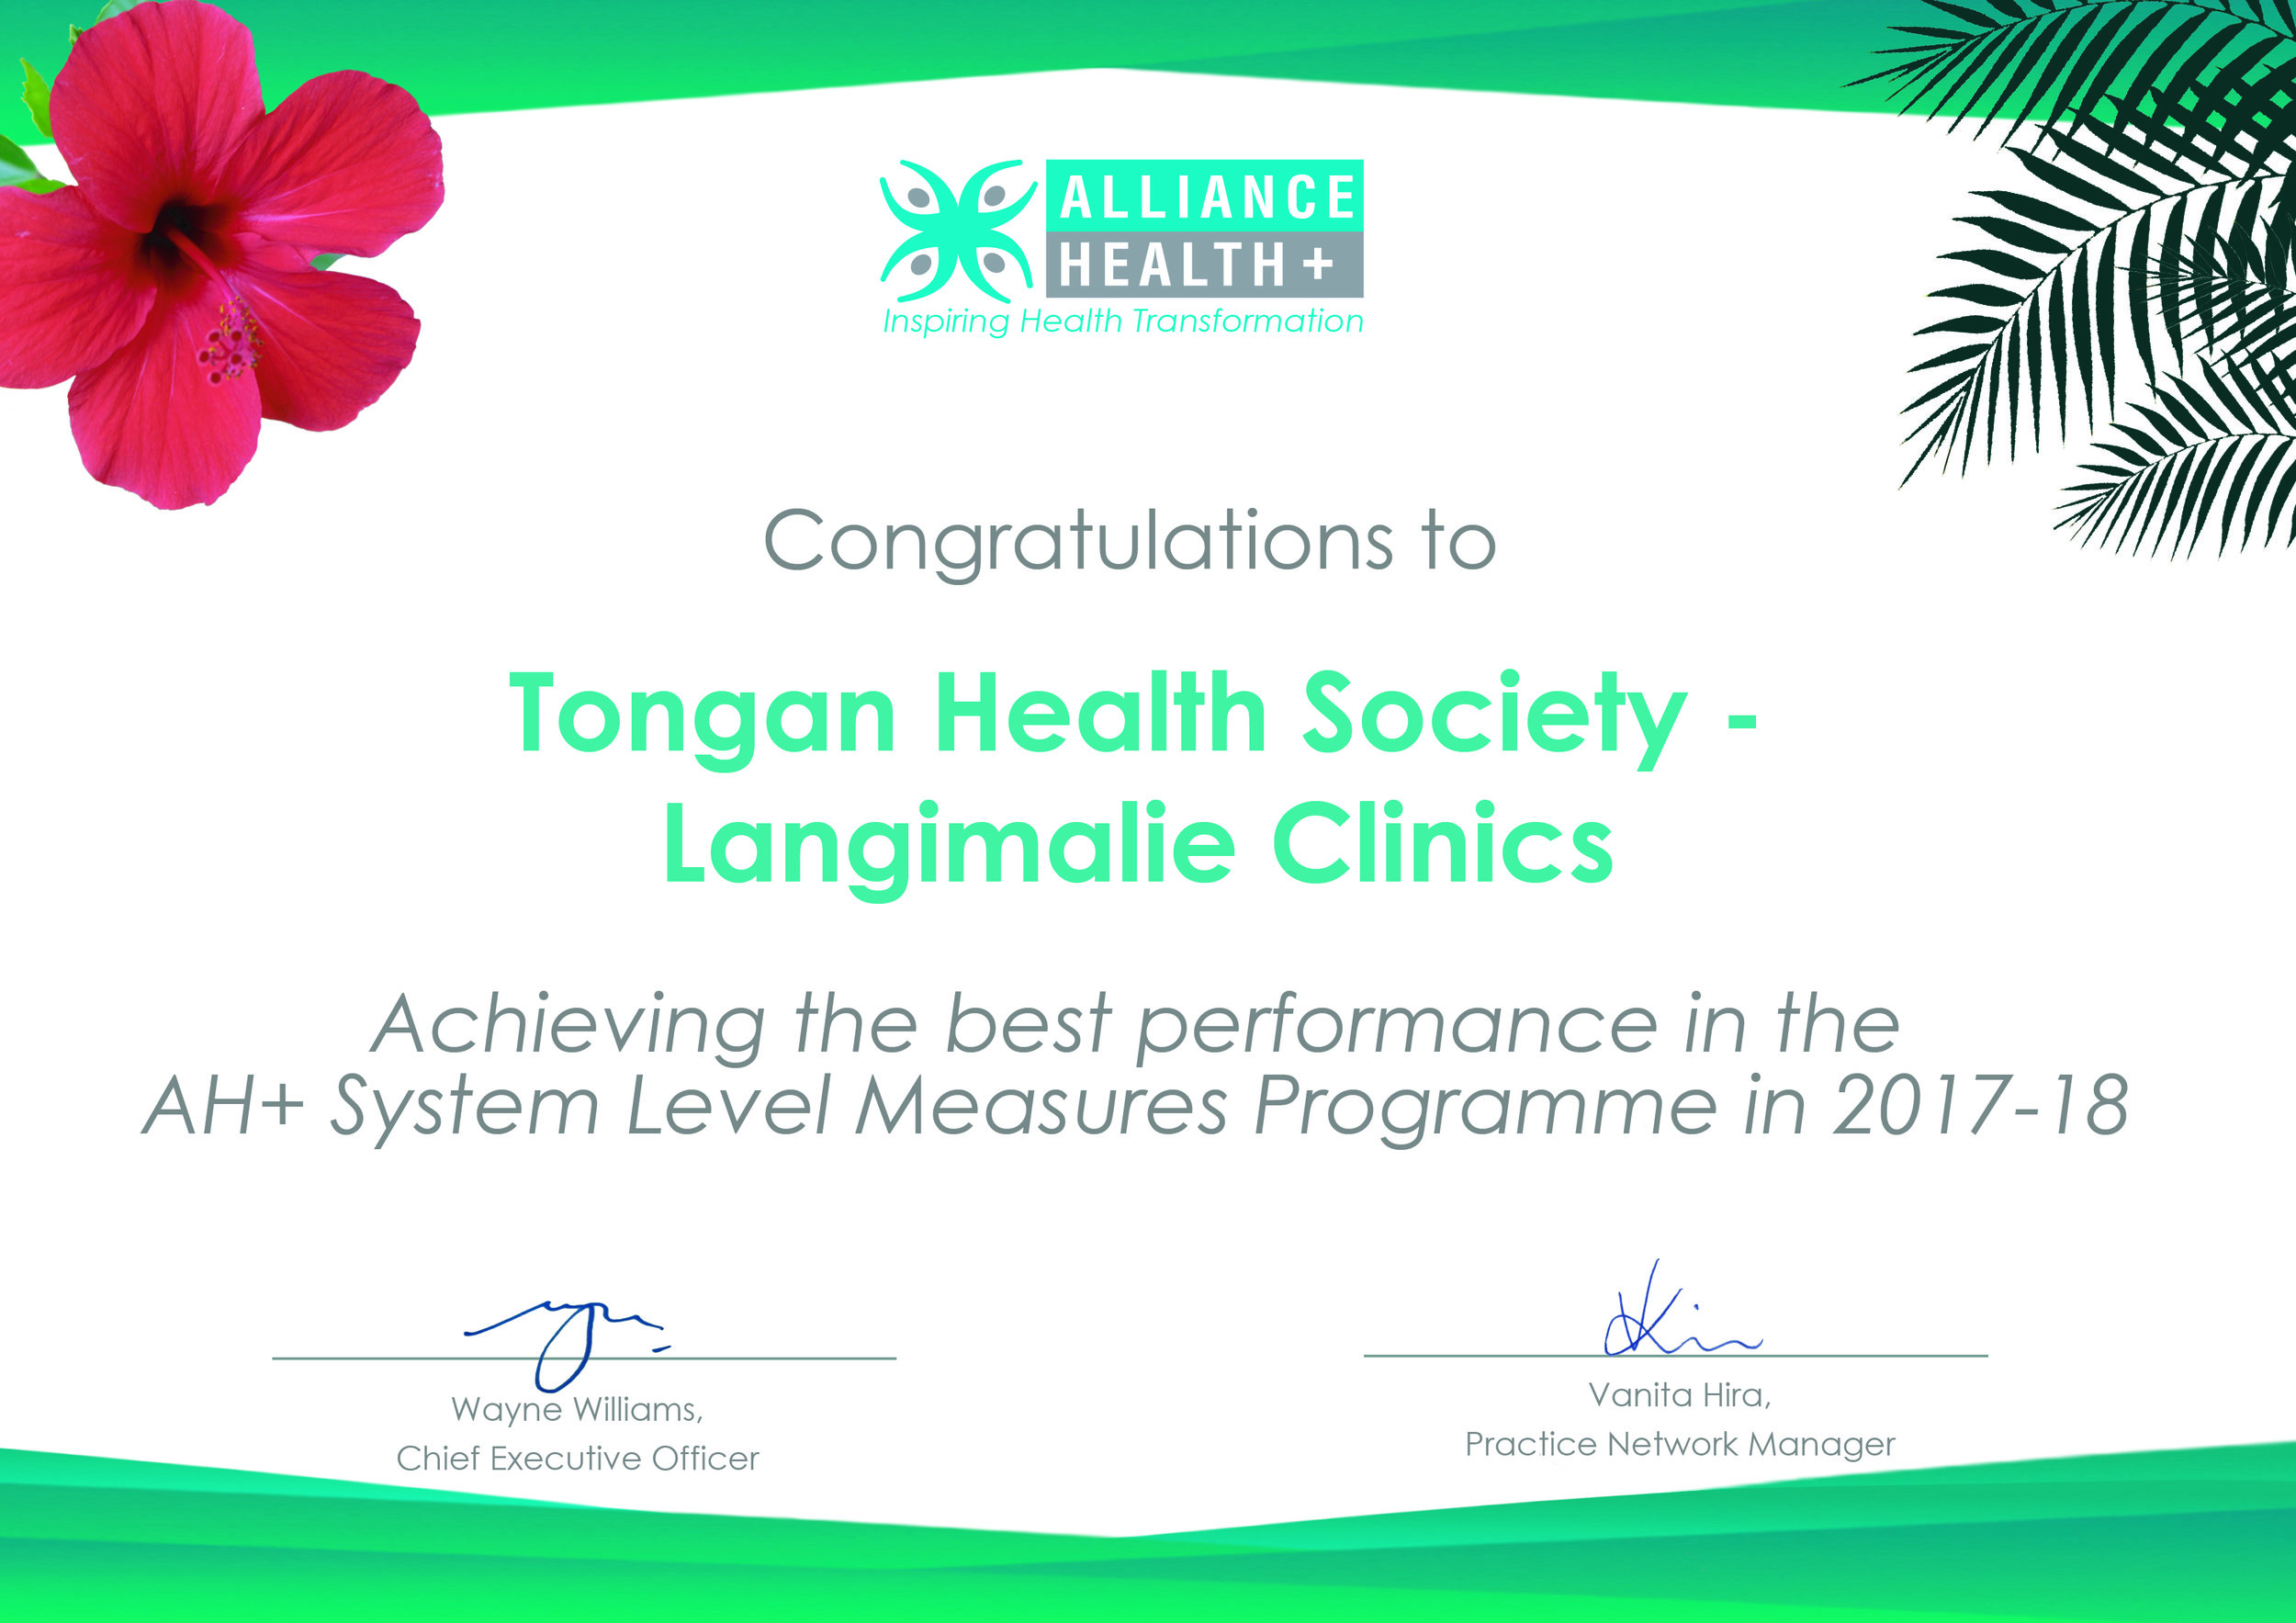 Alliance Health Plus - Achieving the best performance in the AH+ System Level Measures Programme in 2017-18.